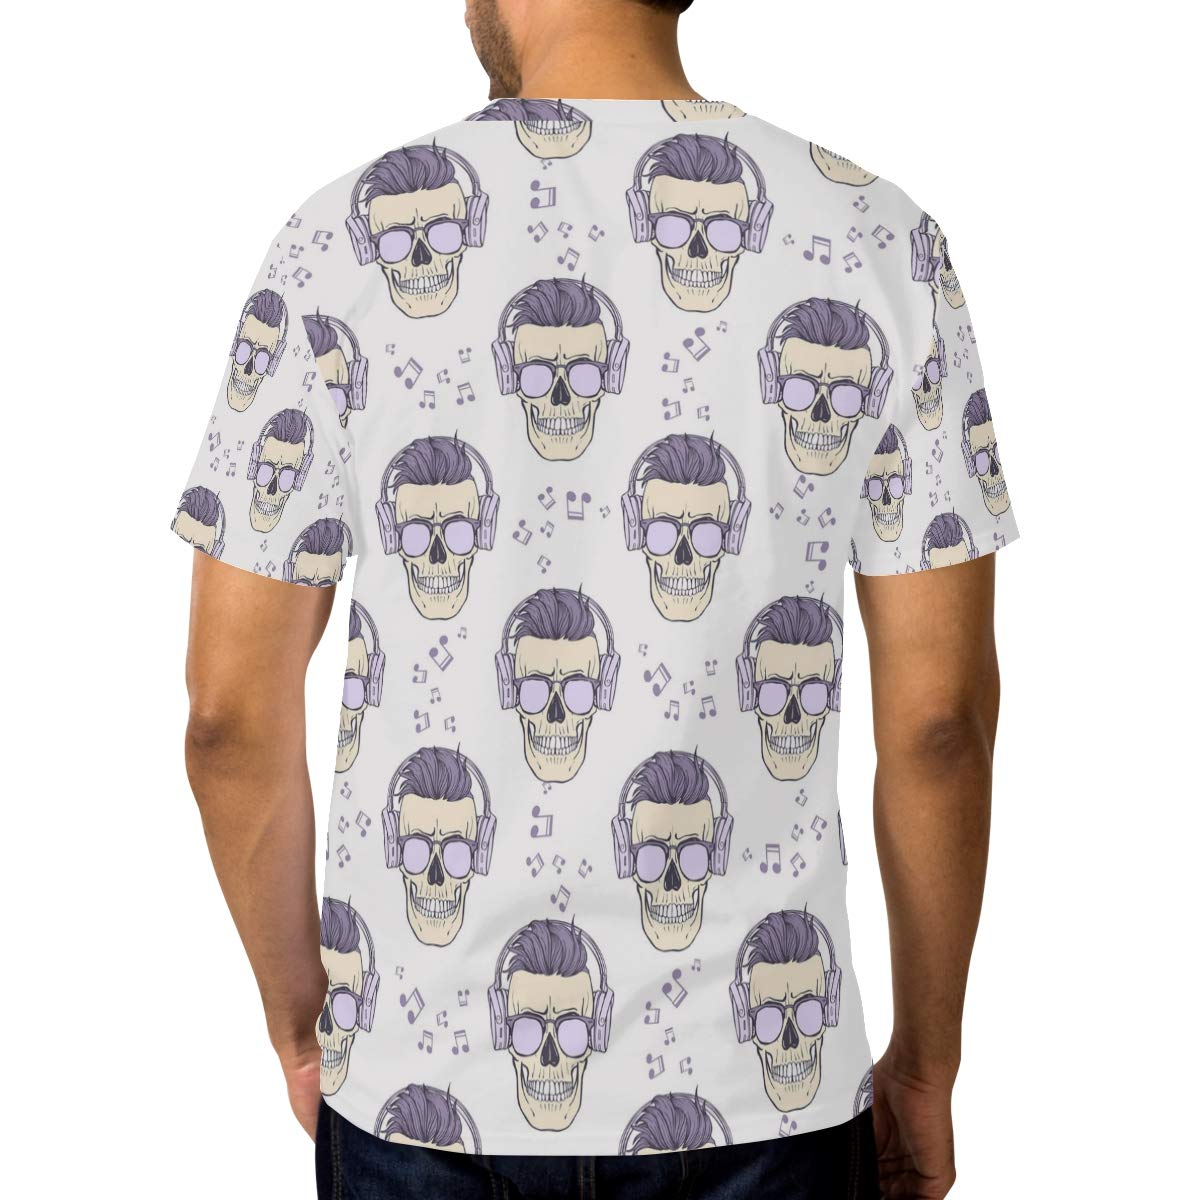 Horatiood Huberyyd Listen to Music Rose Skull Mens T Shirts Graphic Funny Body Print Short T-Shirt Unisex Pullover Blouse